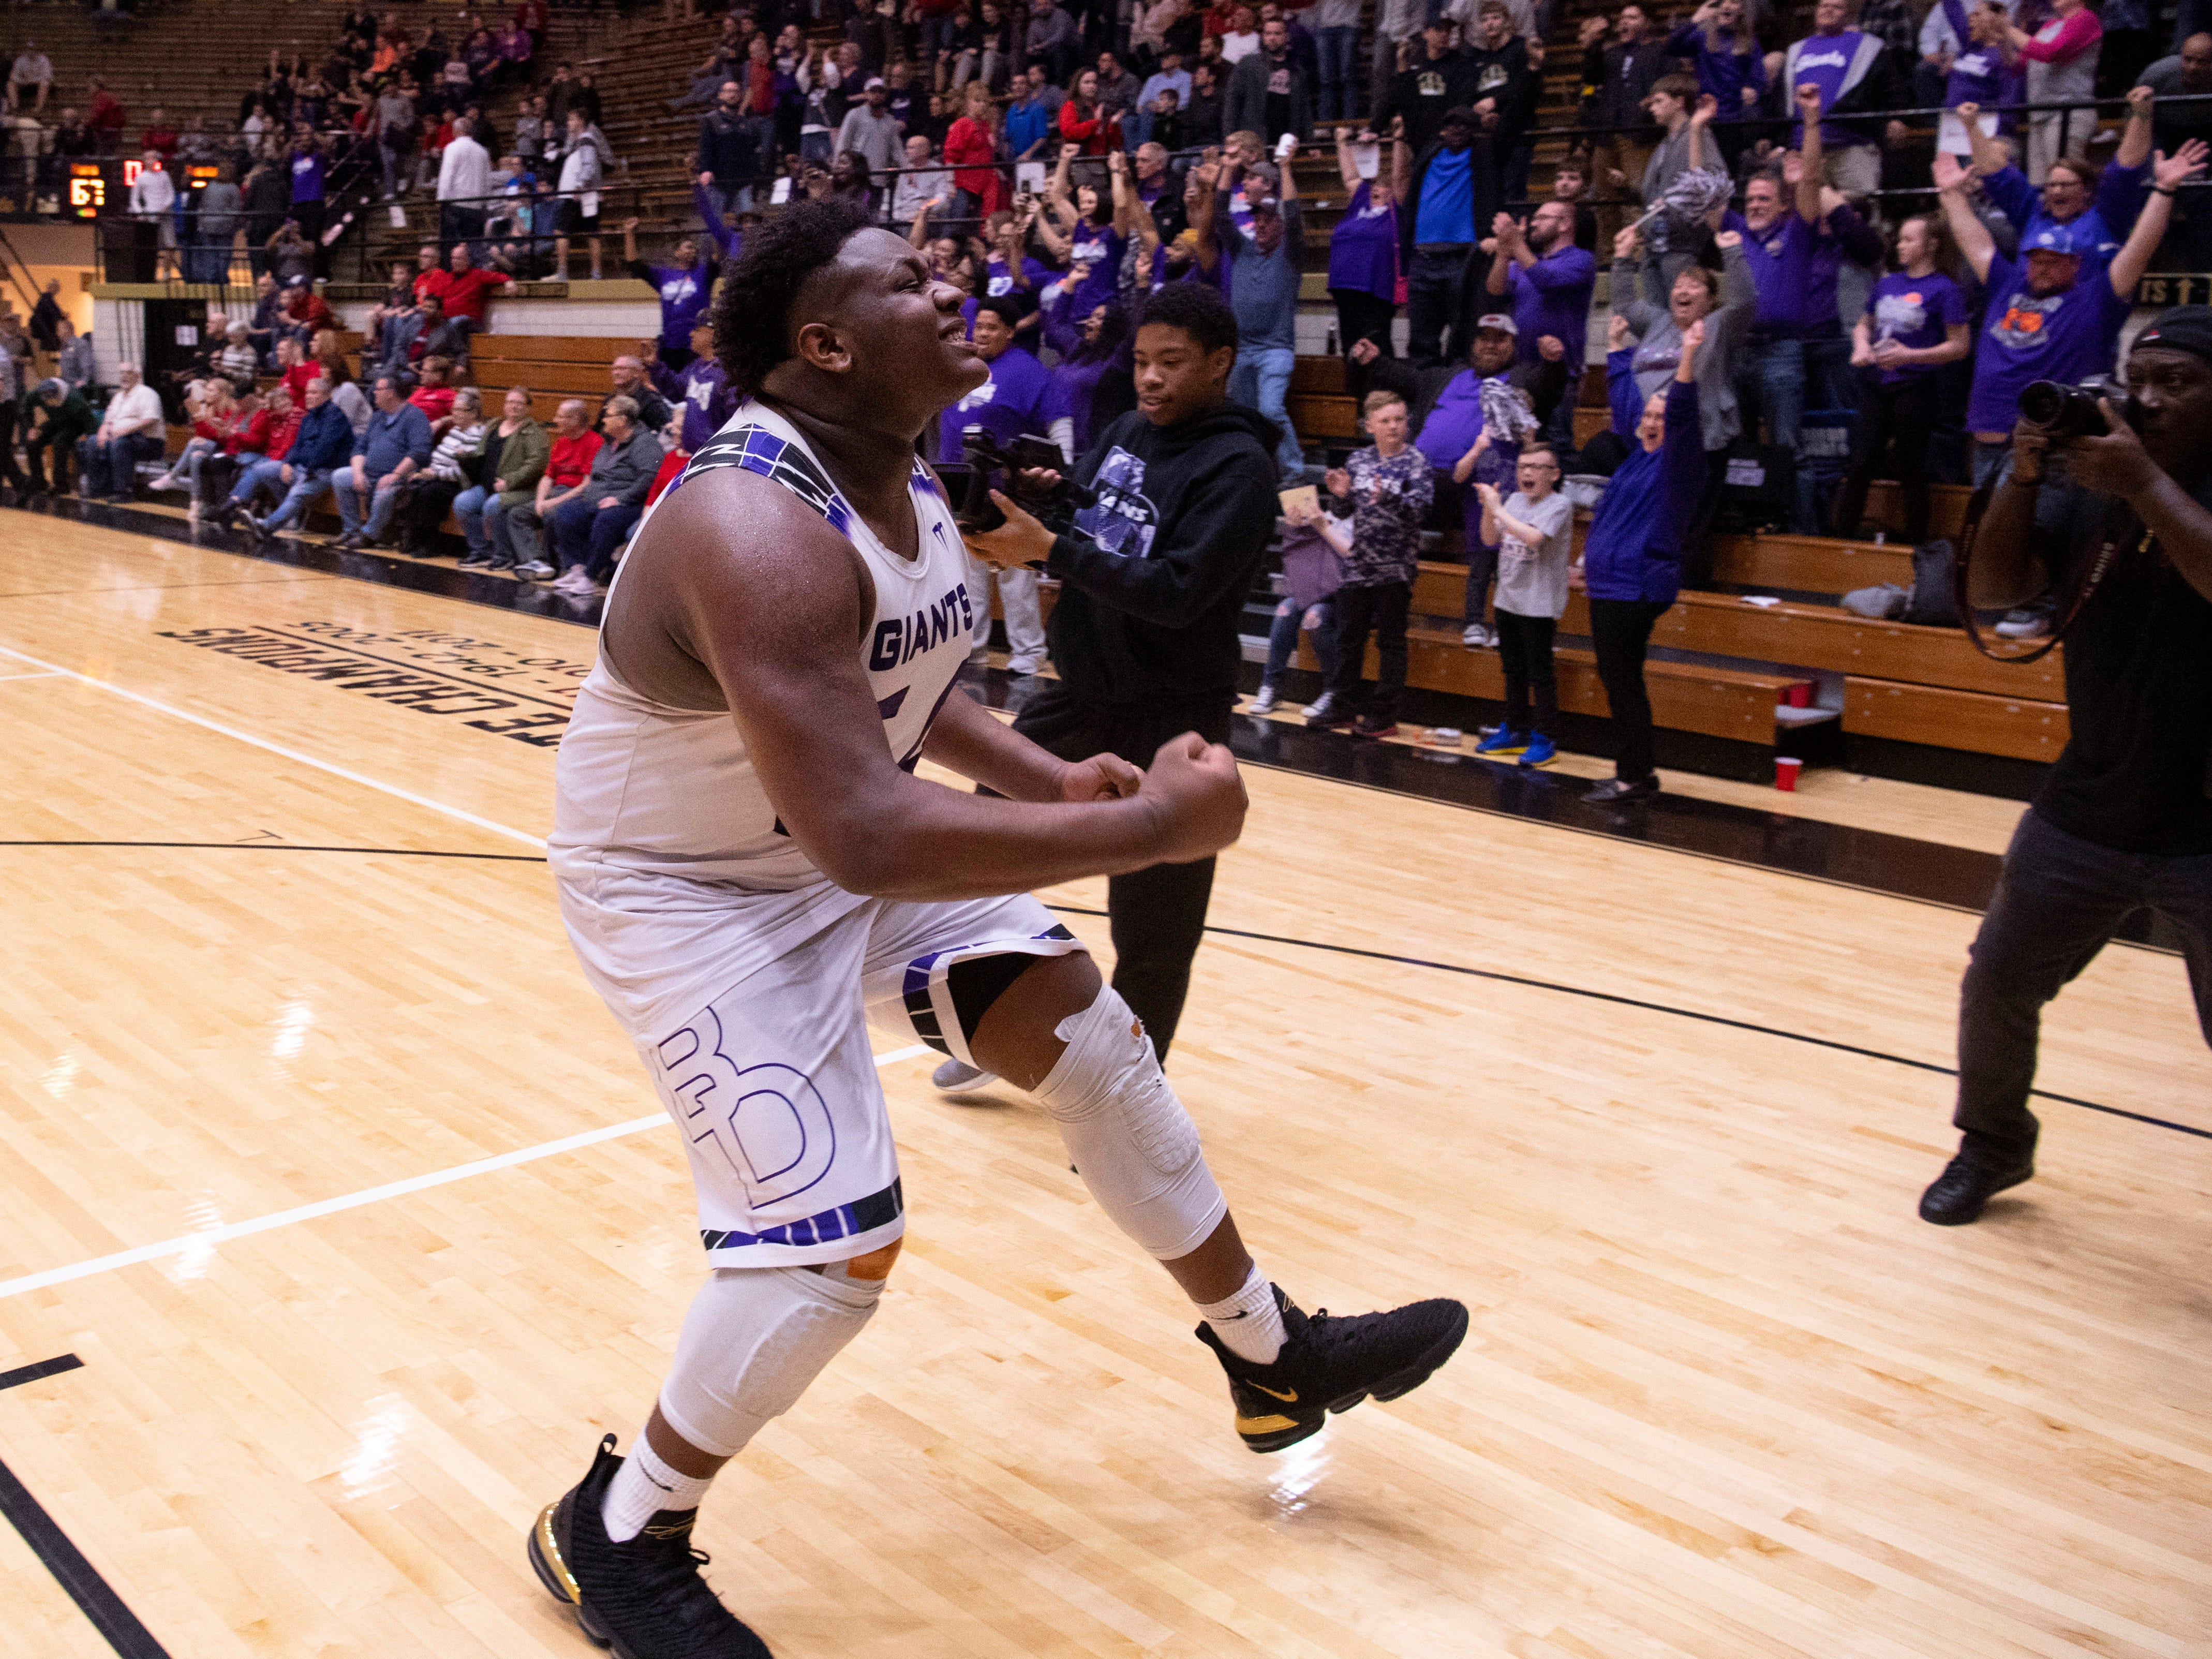 Ben Davis's Dawand Jones (54) celebrates on his way to the student section after beating Center Grove in the 4A Boys Indiana Semi-State Basketball Tournament at the Hatchet House in Washington, Ind., Saturday afternoon.